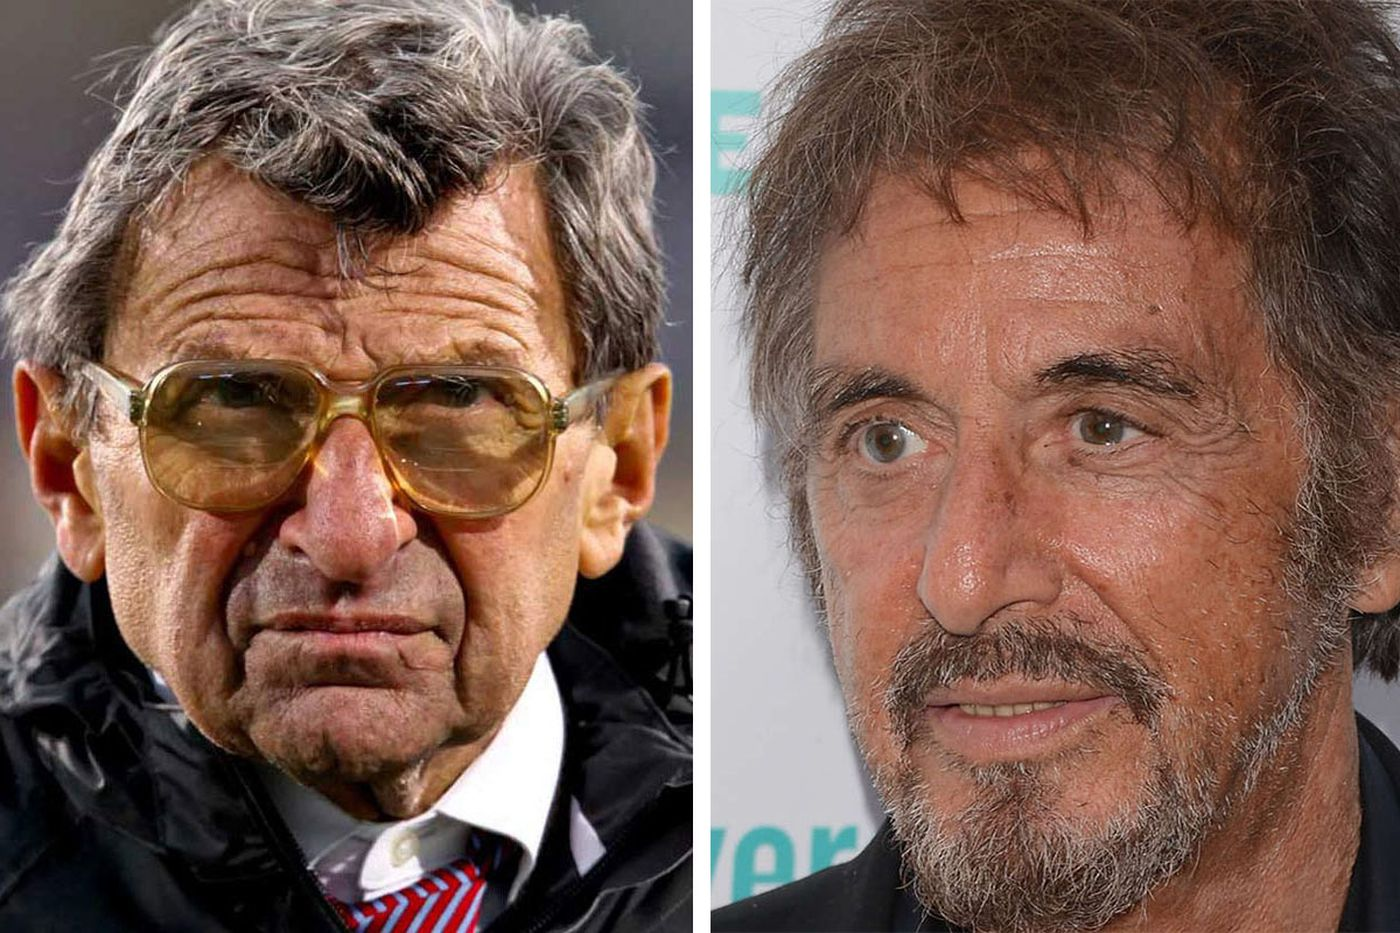 Al Pacino to play Joe Paterno in HBO film based on Penn State sex scandal